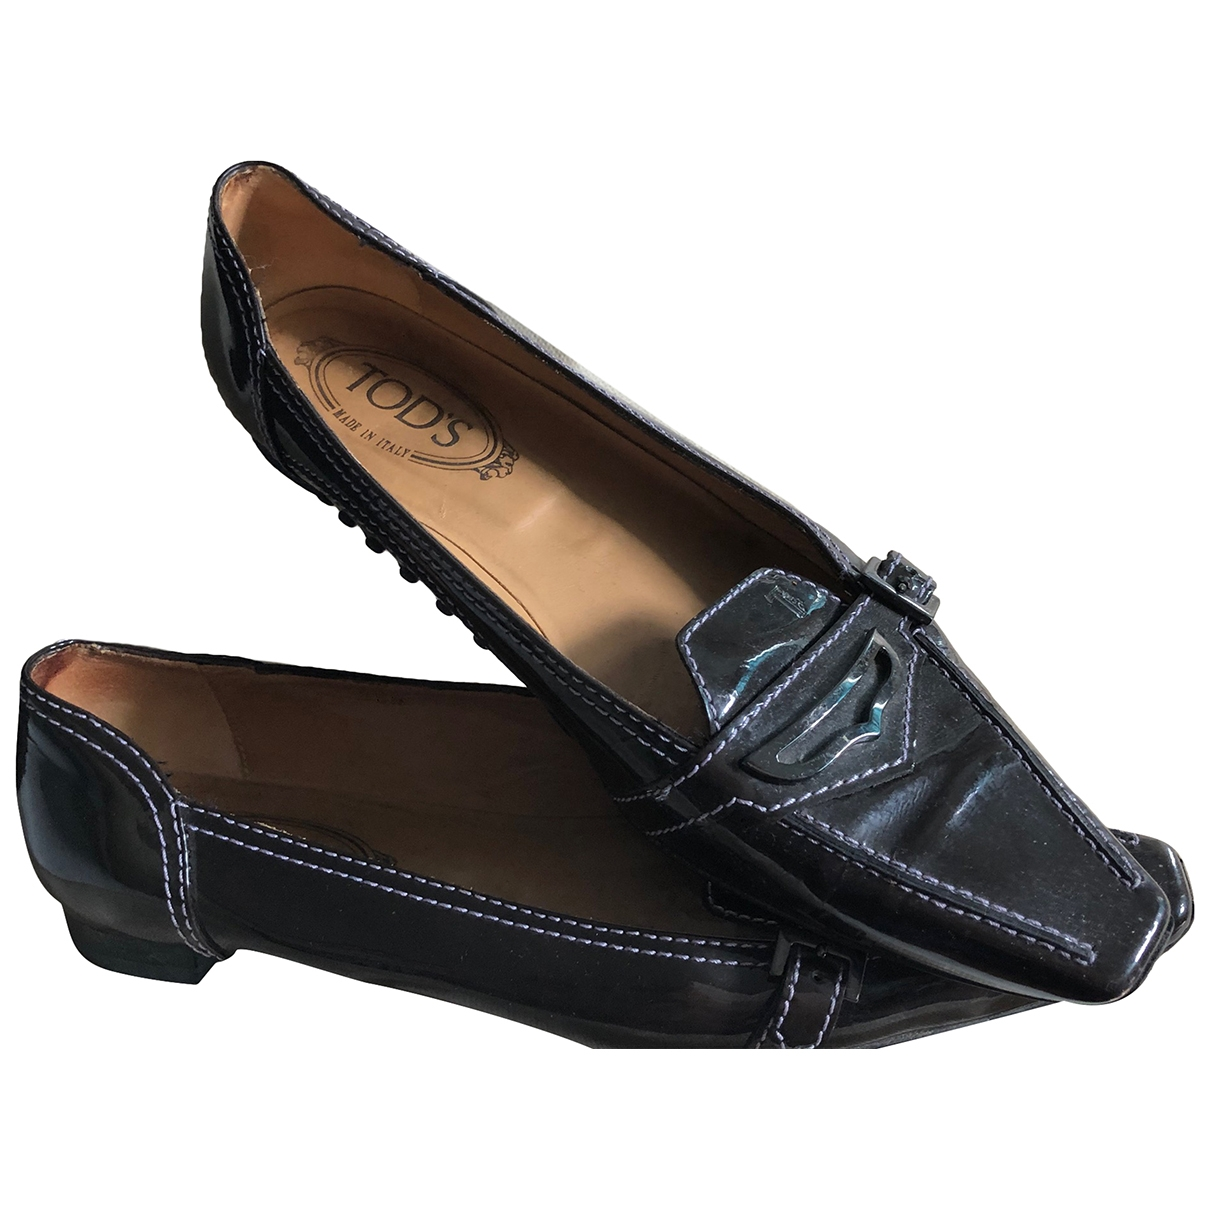 Tod's \N Brown Patent leather Flats for Women 38.5 EU